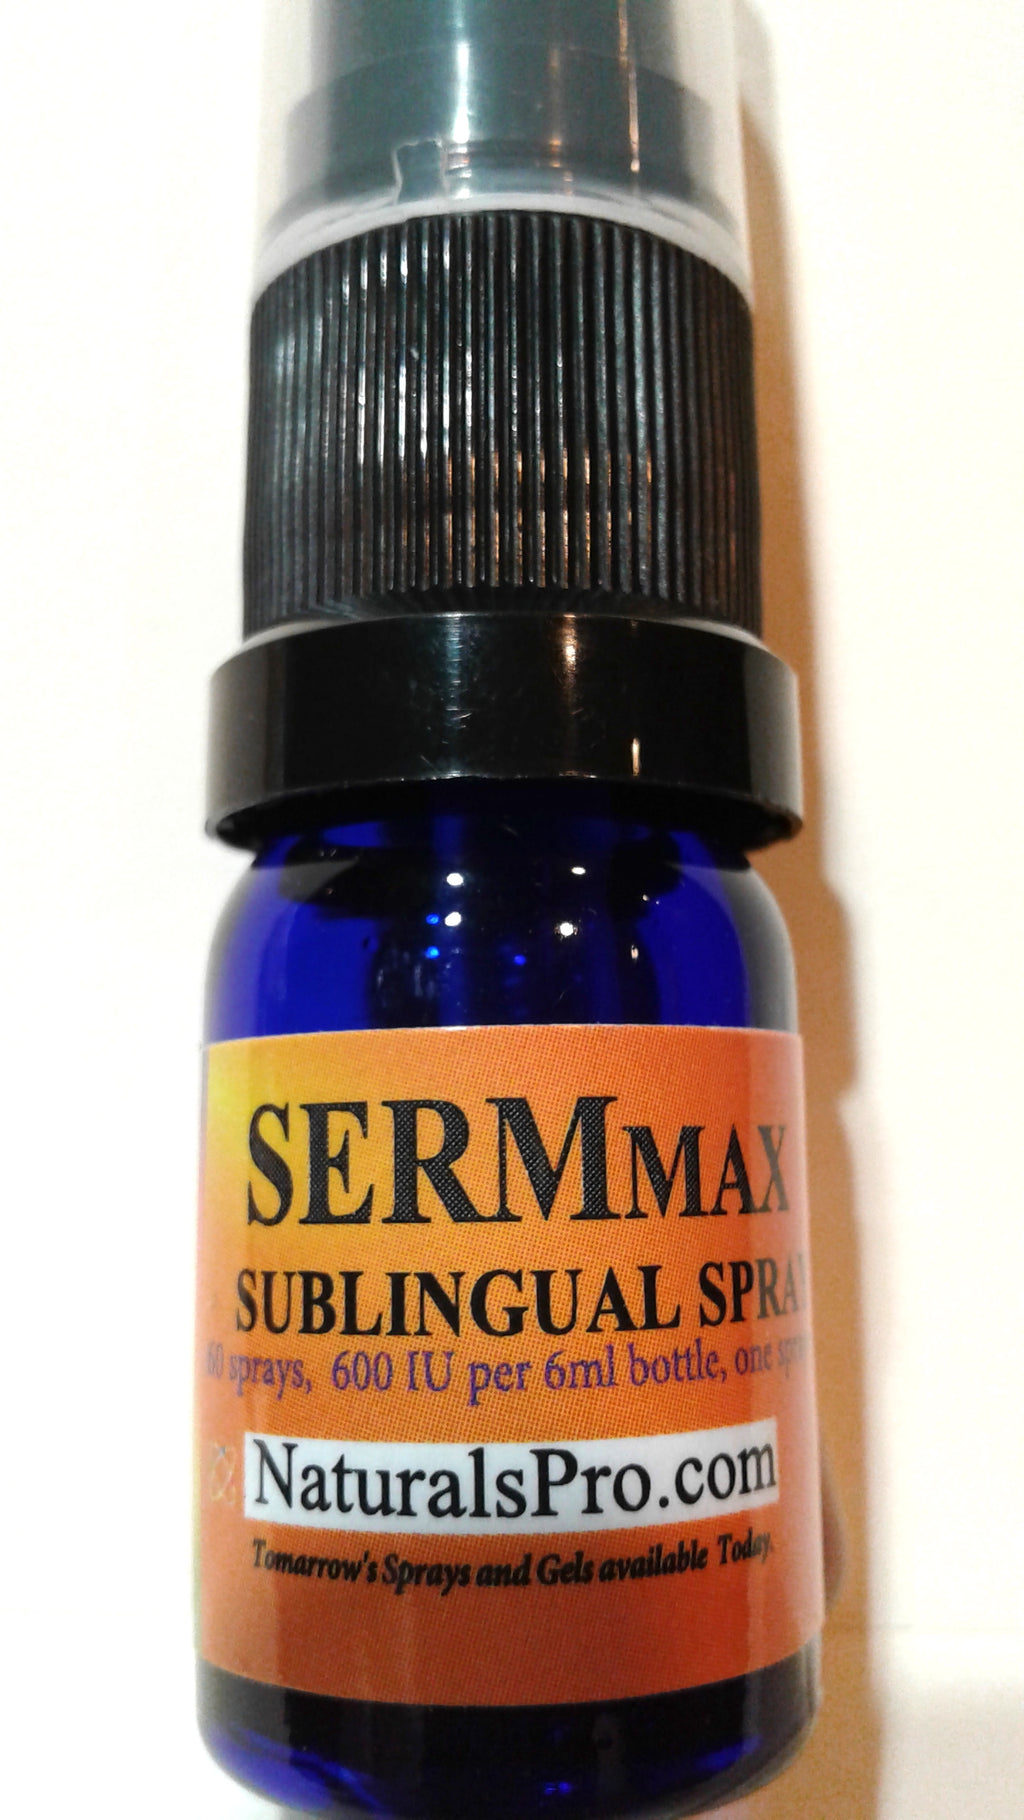 Sermorelin boosting pituitary HGH release and muscle building, $29.50 wholesale, 50% off retail.